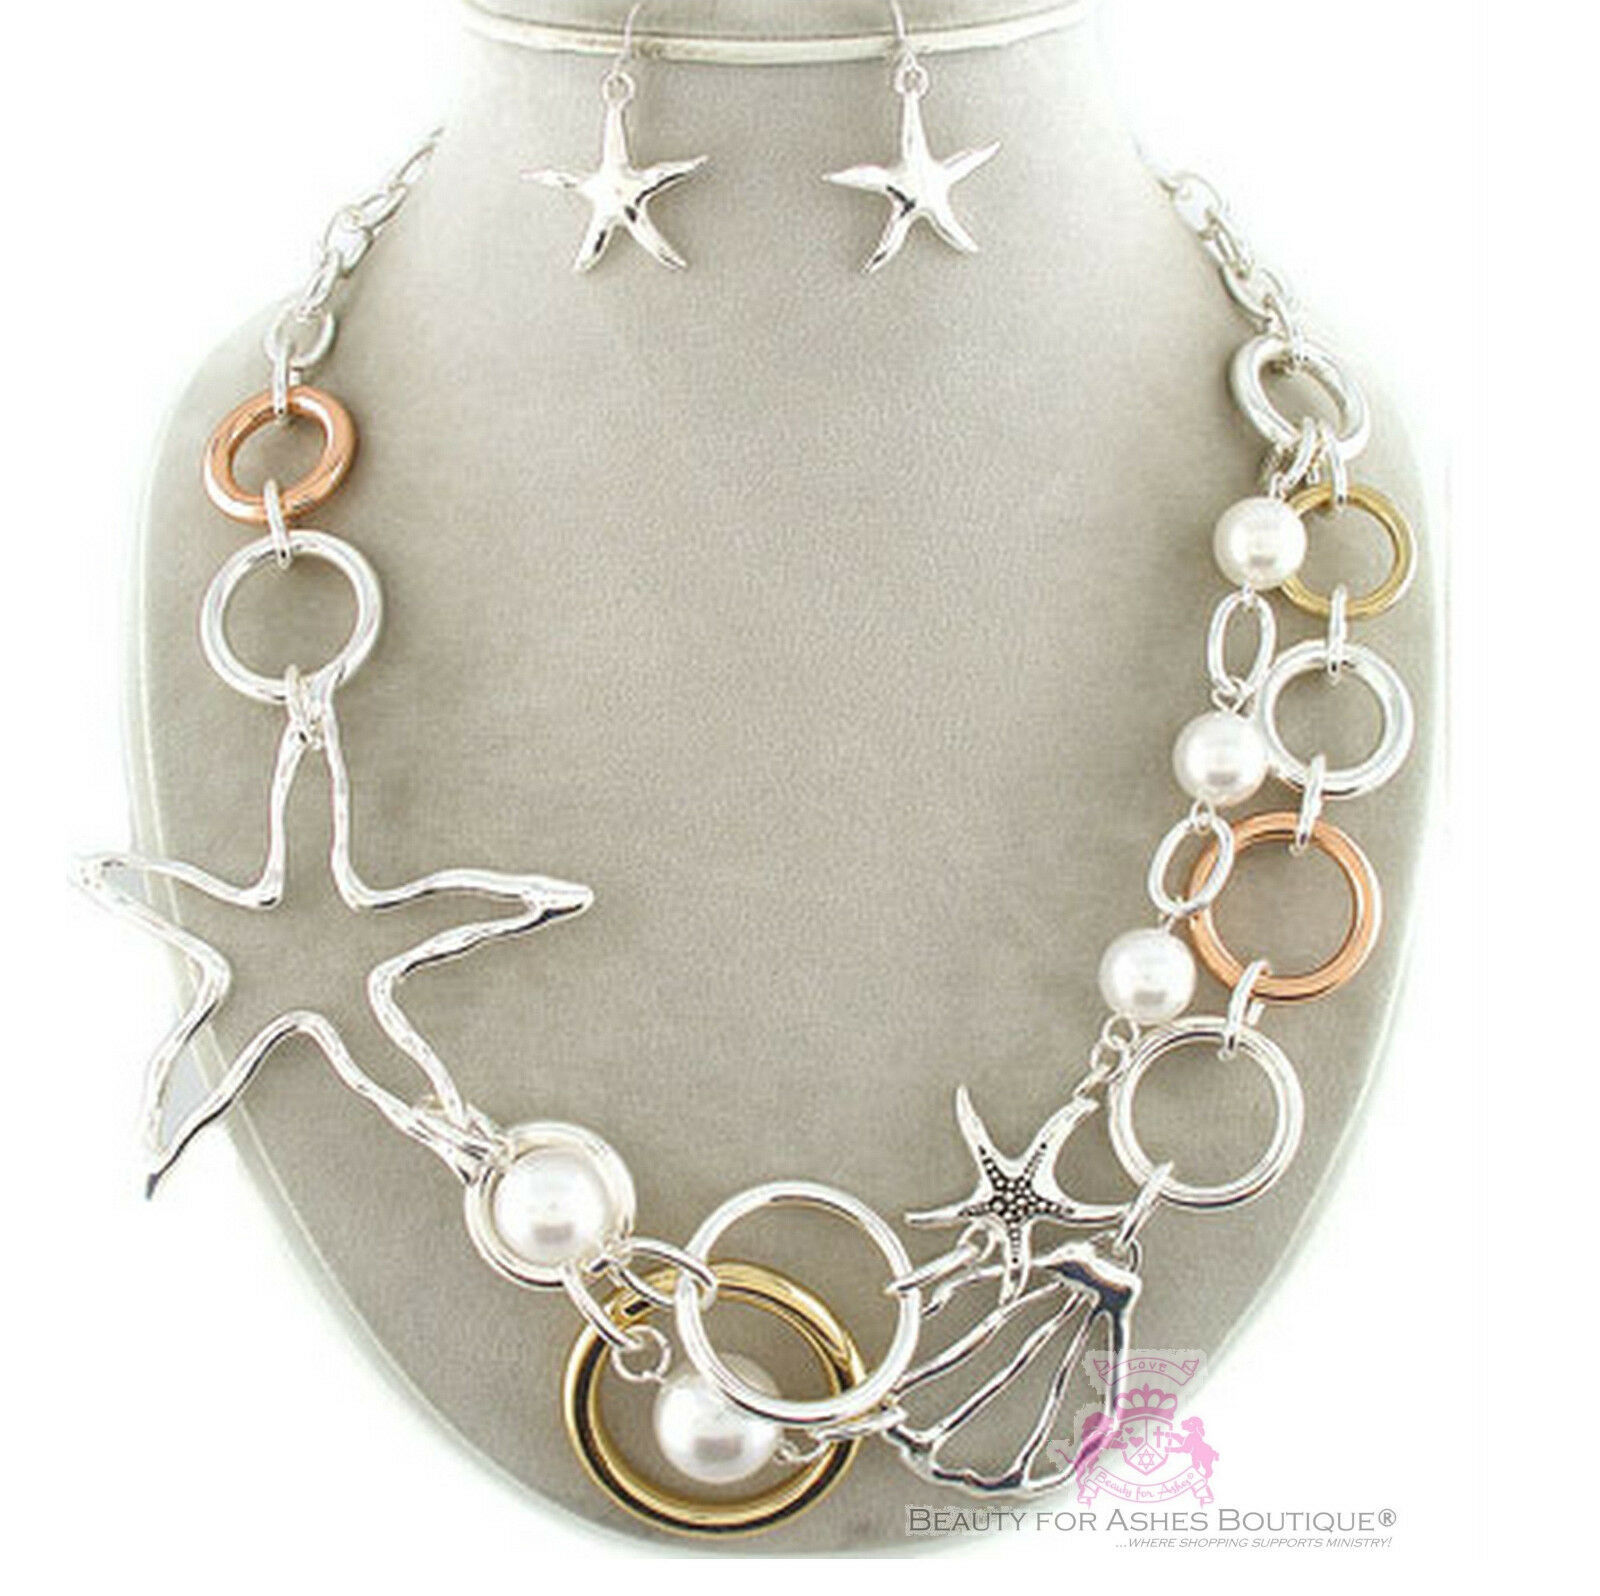 Nautical Vacation Beach Star Resort Starfish Pearl Layered Chunky Necklace Set - $29.95